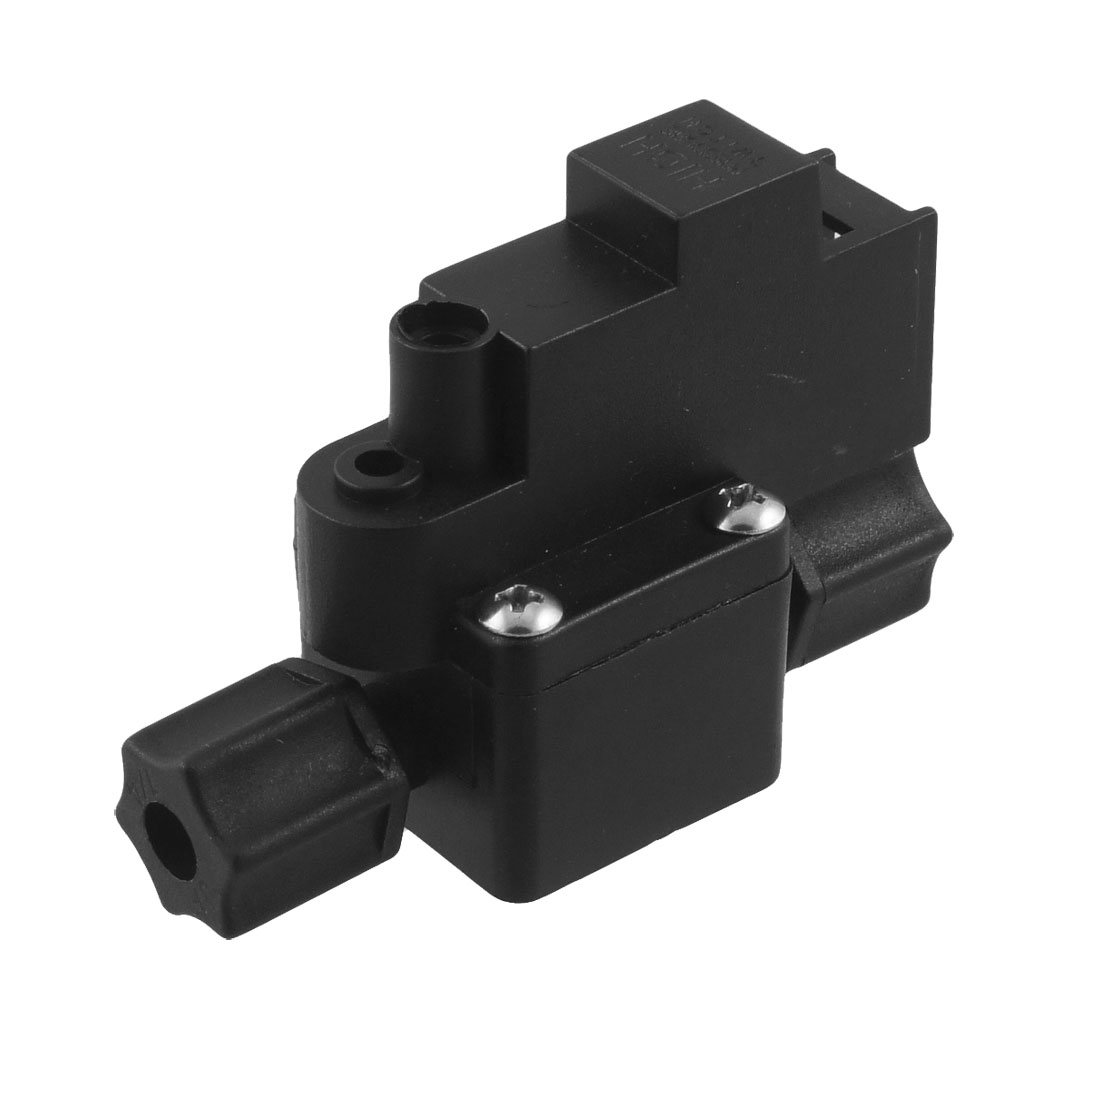 DC 12-110V Water High Pressure Switch Black